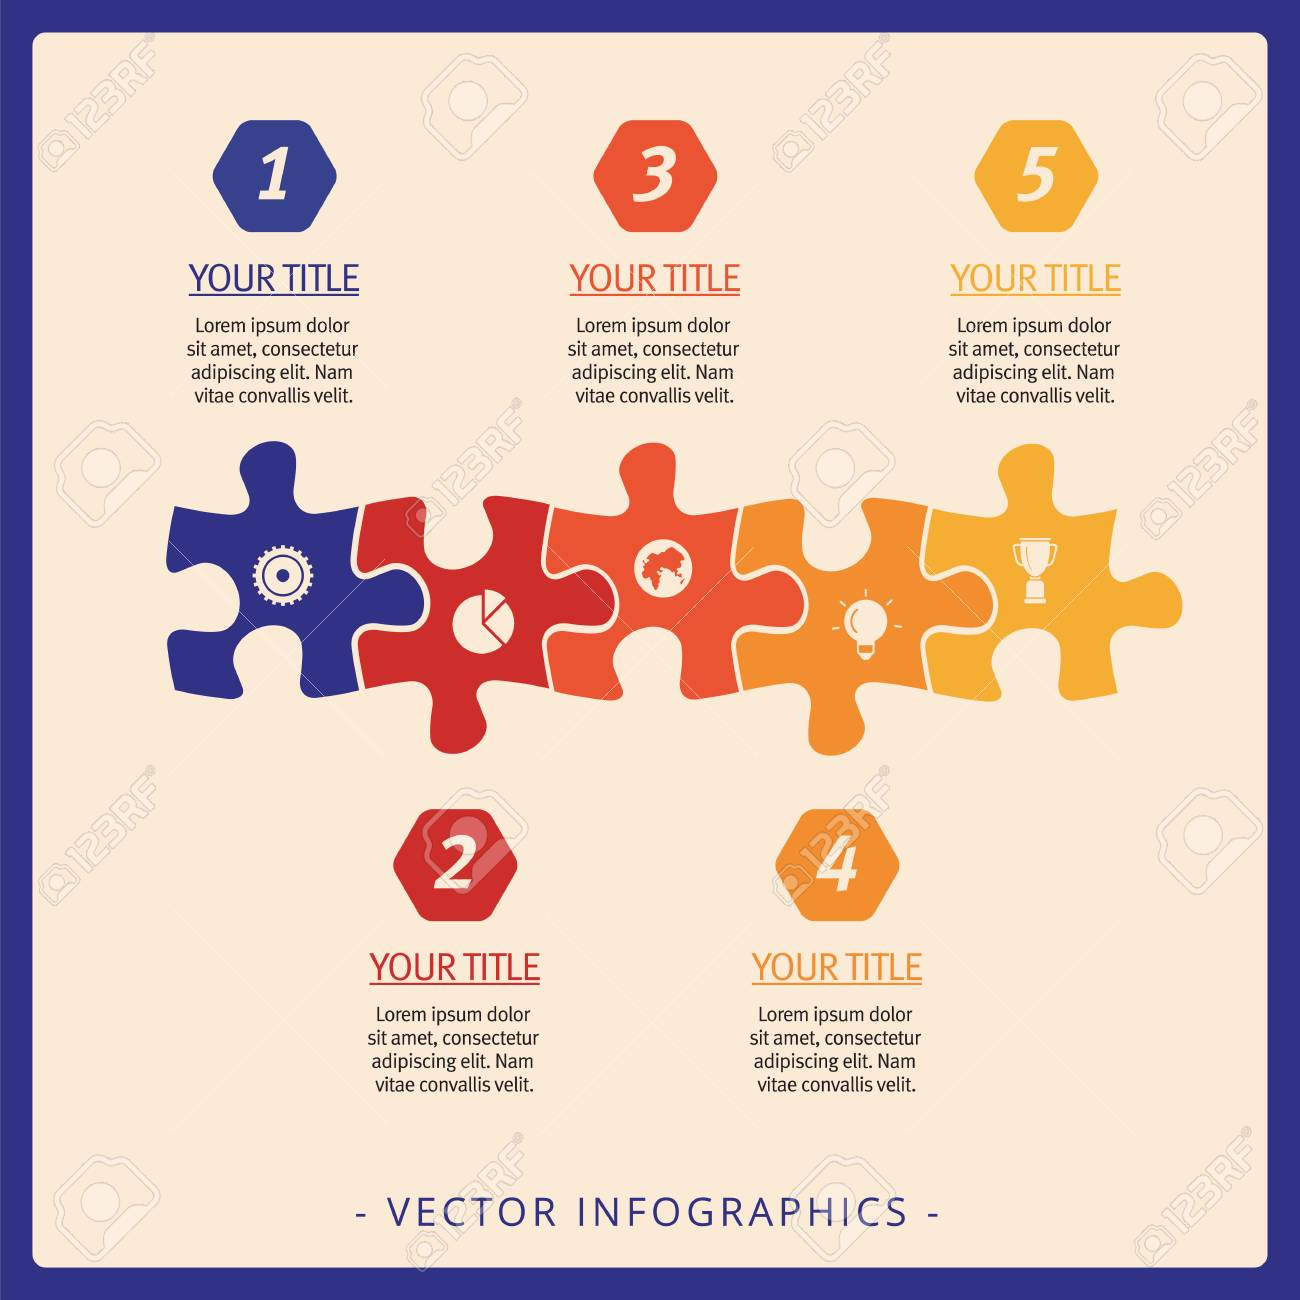 editable infographic template of flowchart including five puzzle